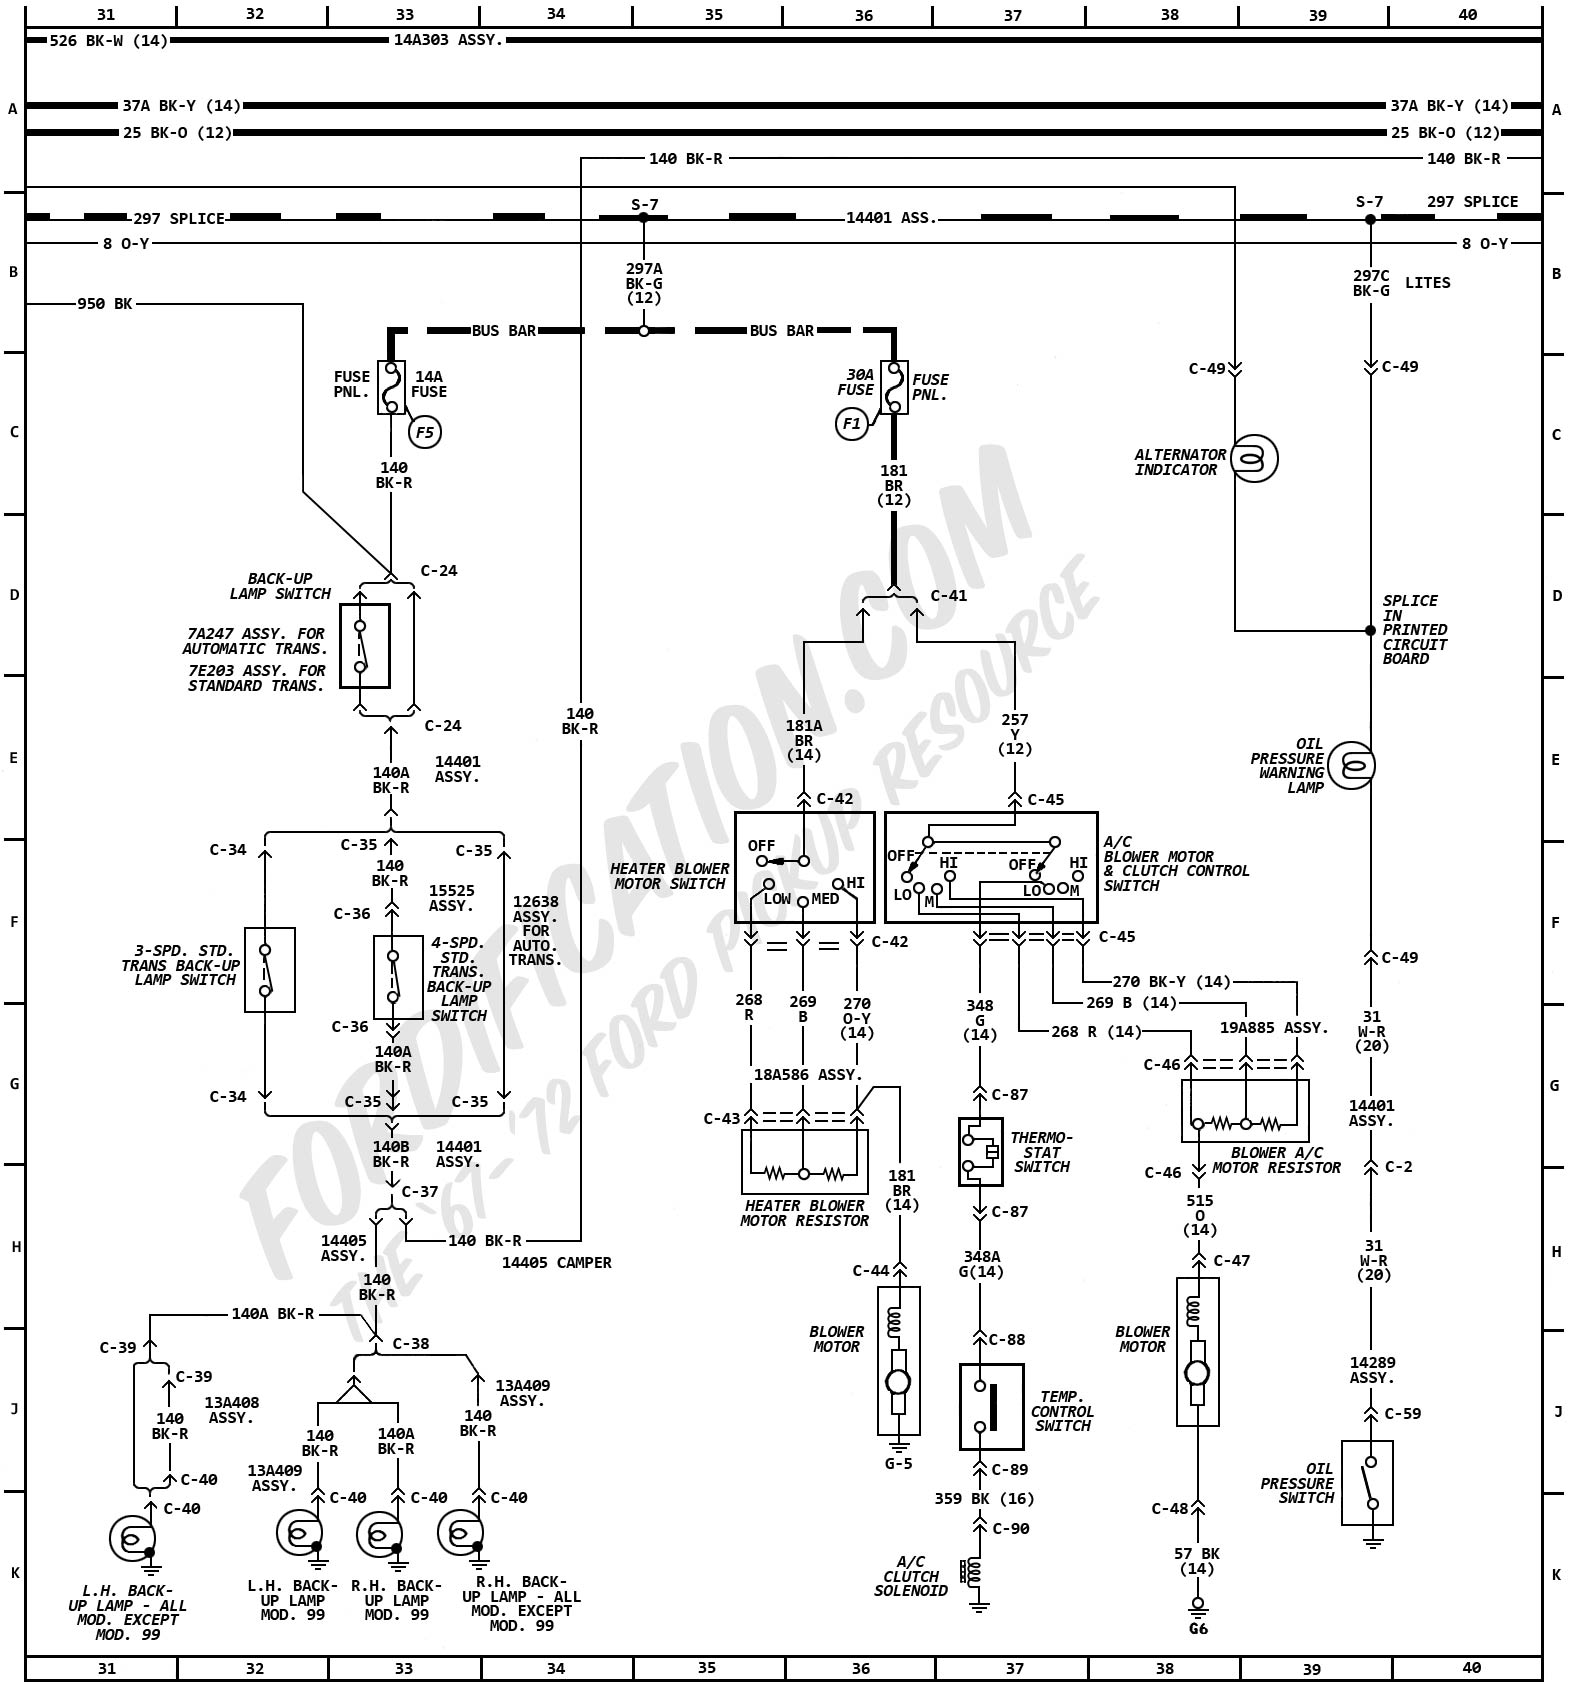 1972 ford truck wiring diagrams fordification com rh fordification com Ford Electrical Wiring Diagrams Ford F-250 Wiring Diagram